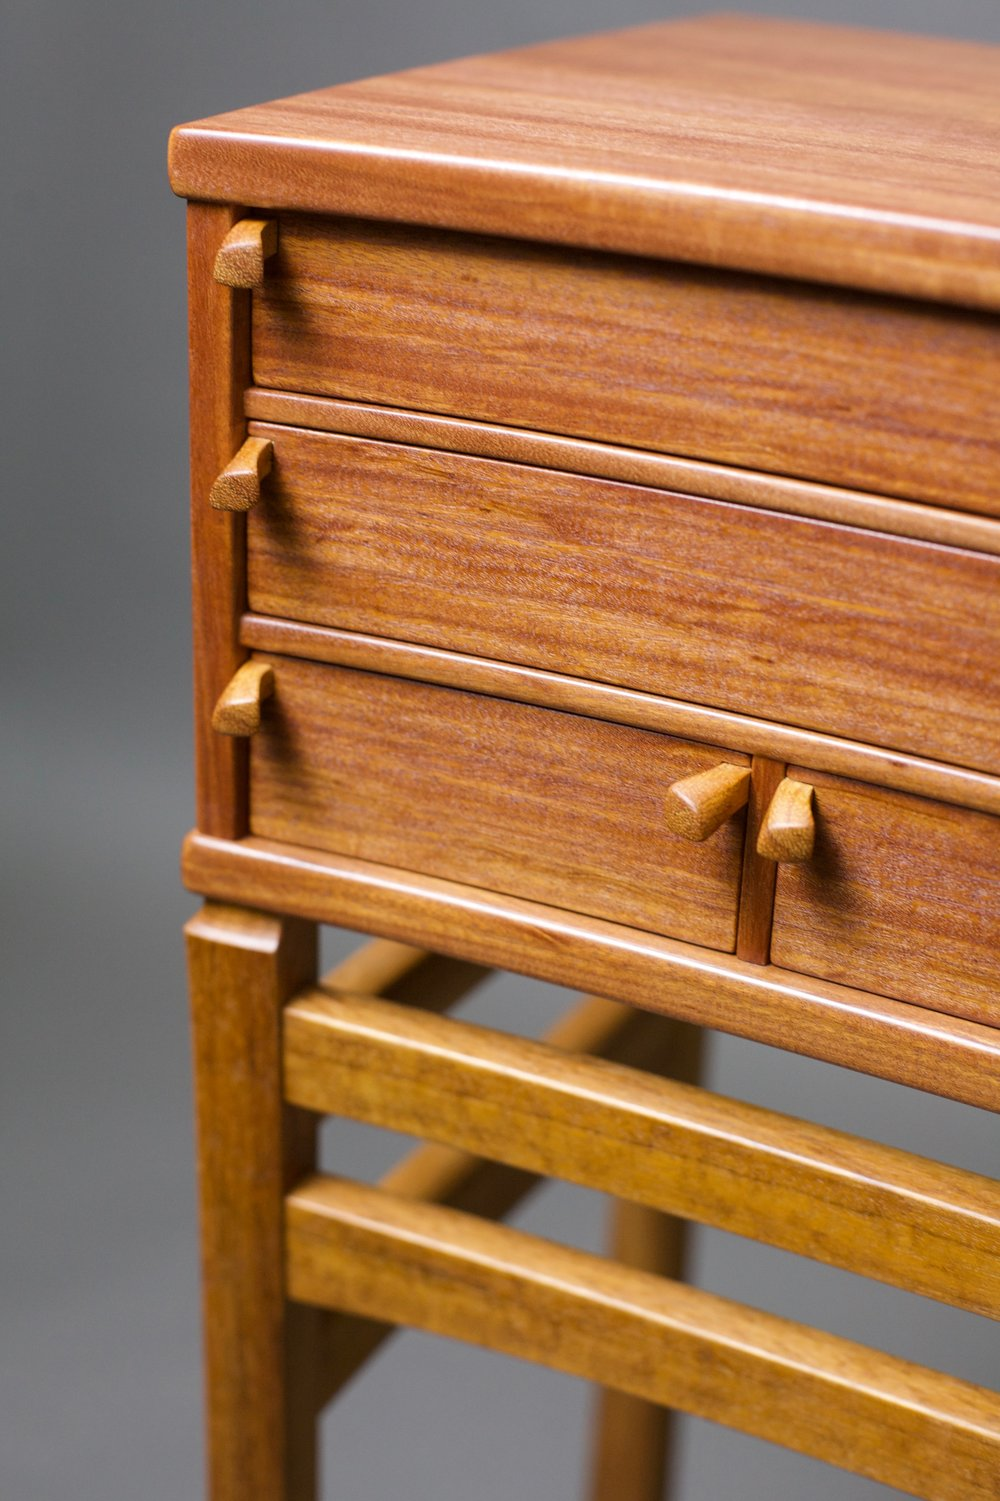 pull detail 'Heart' cabinet by Robert Van Norman  photography by Tim Andries